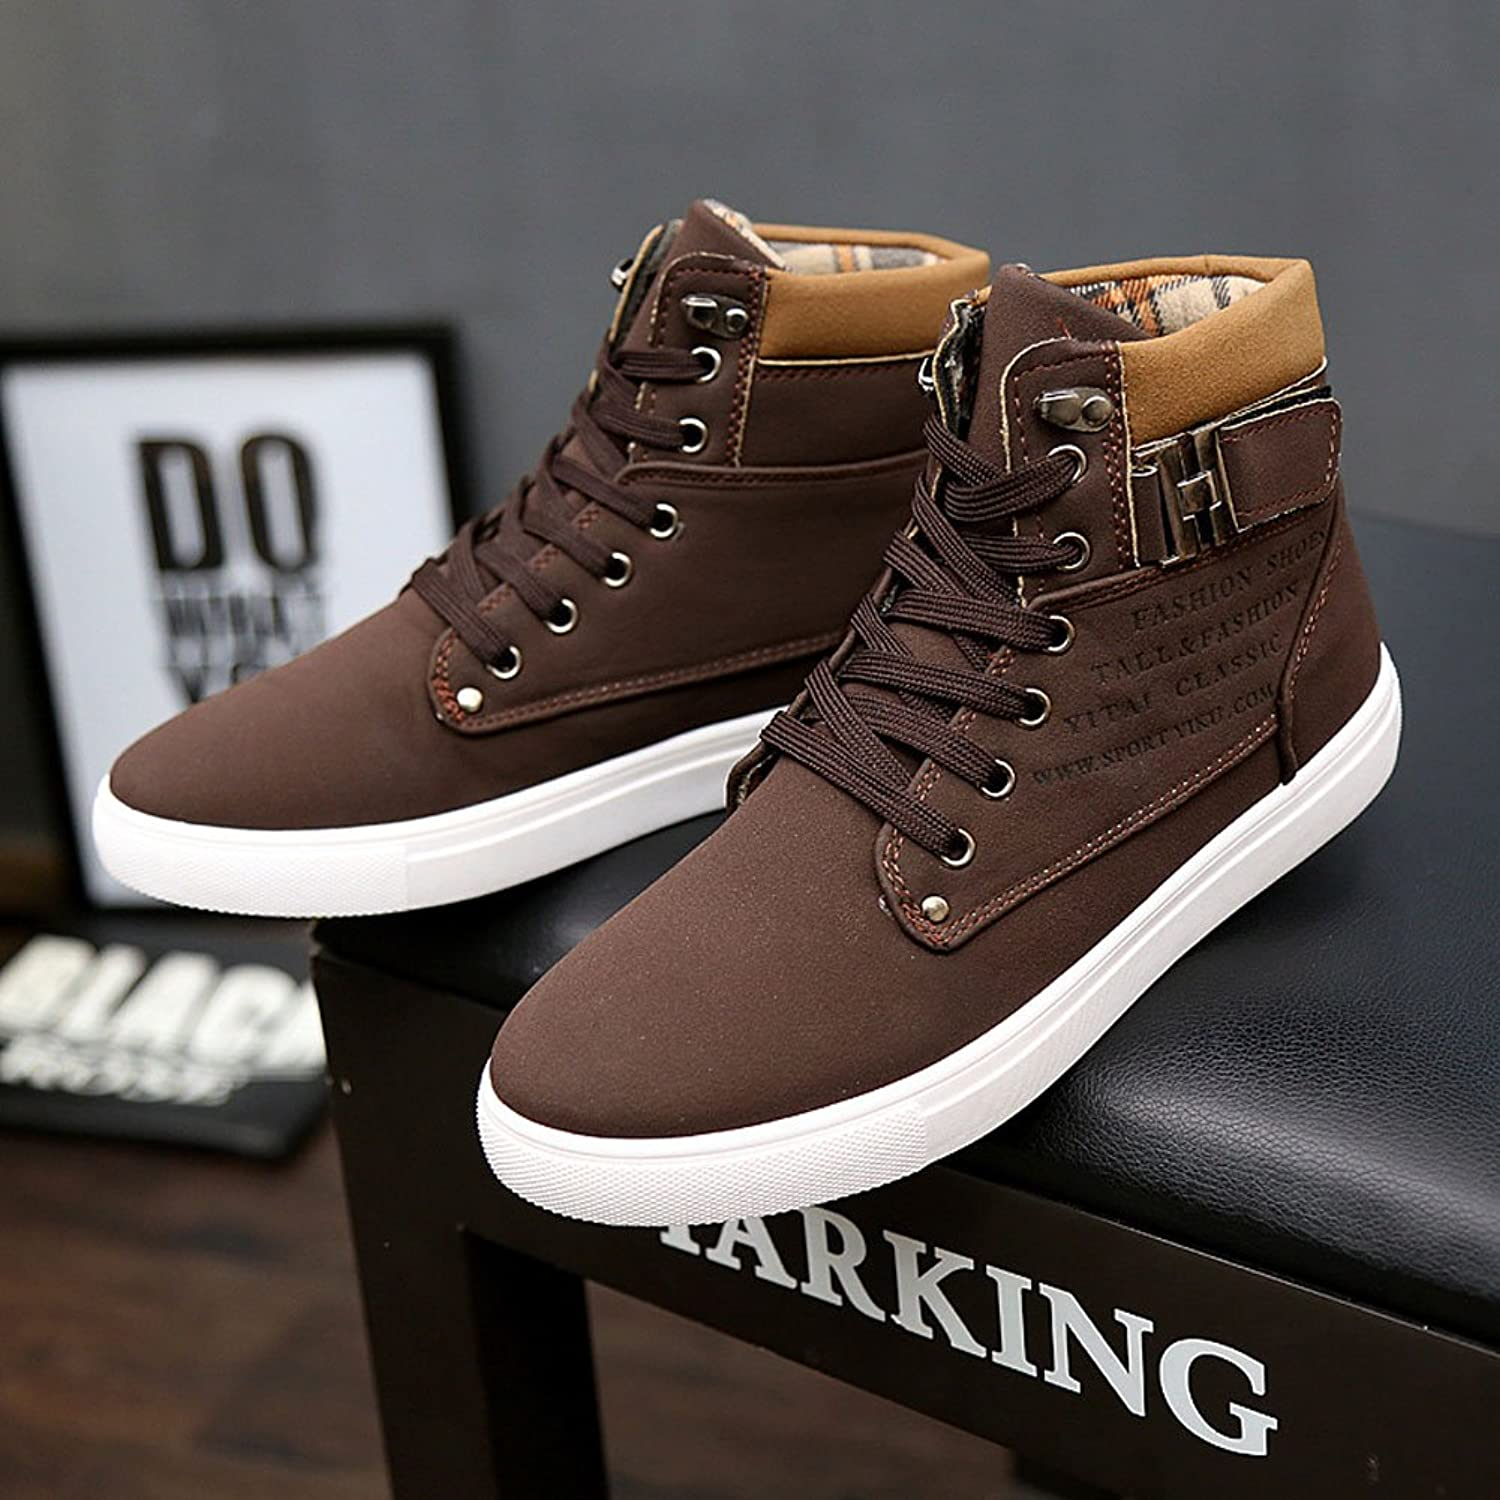 iLory Men's Fashion High Top Casual Shoes Lace up Suede Loafers Martin boots:  Amazon.co.uk: Shoes & Bags